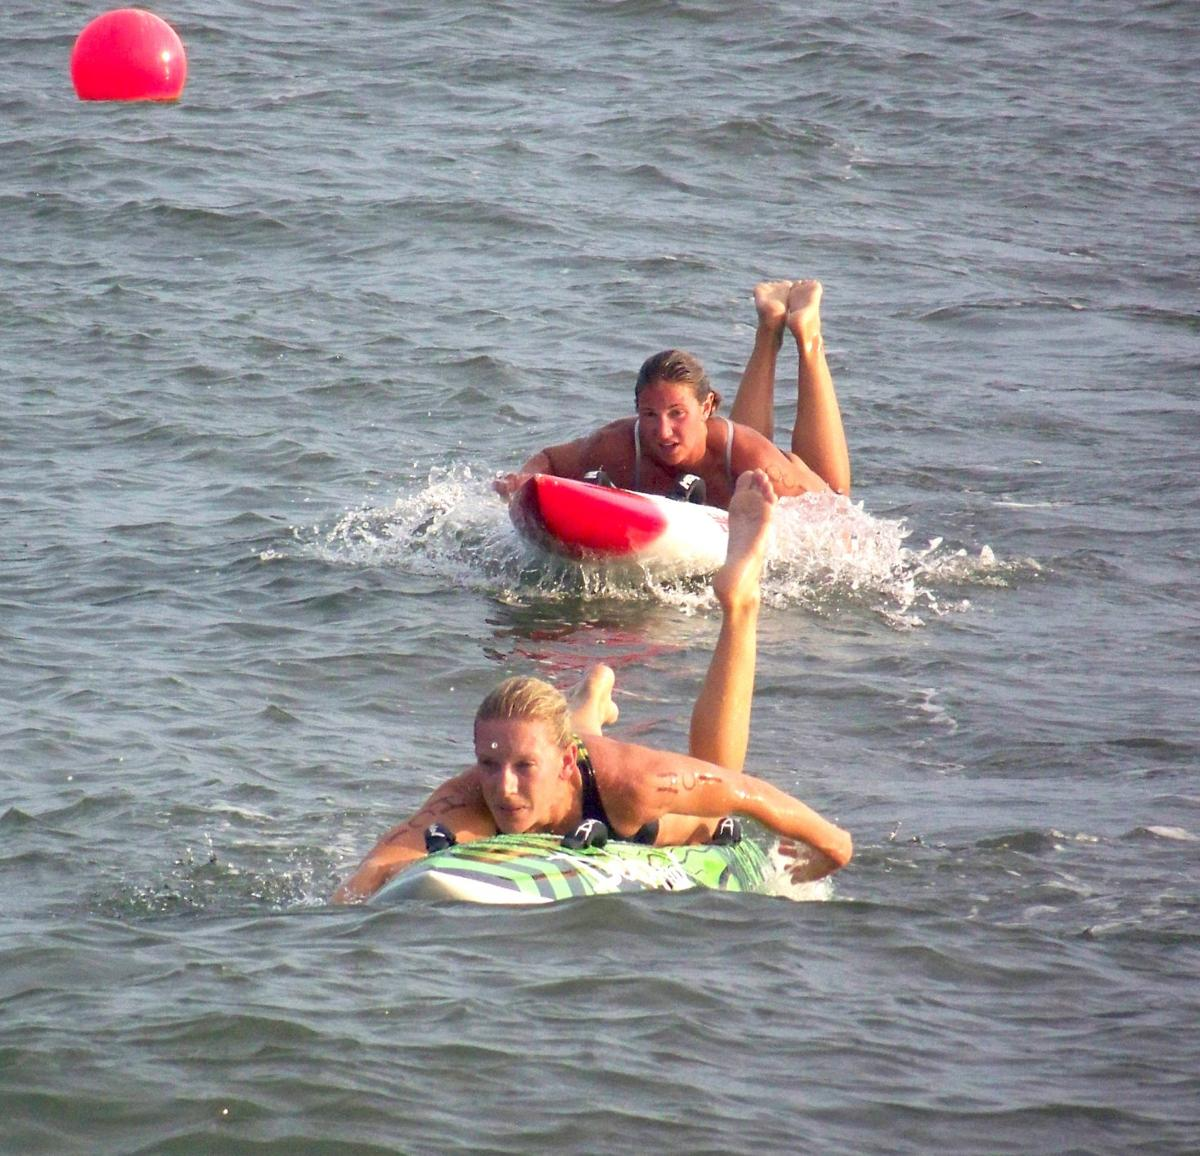 Ocean City's Lexi Santer surges to victory at Cape May ...